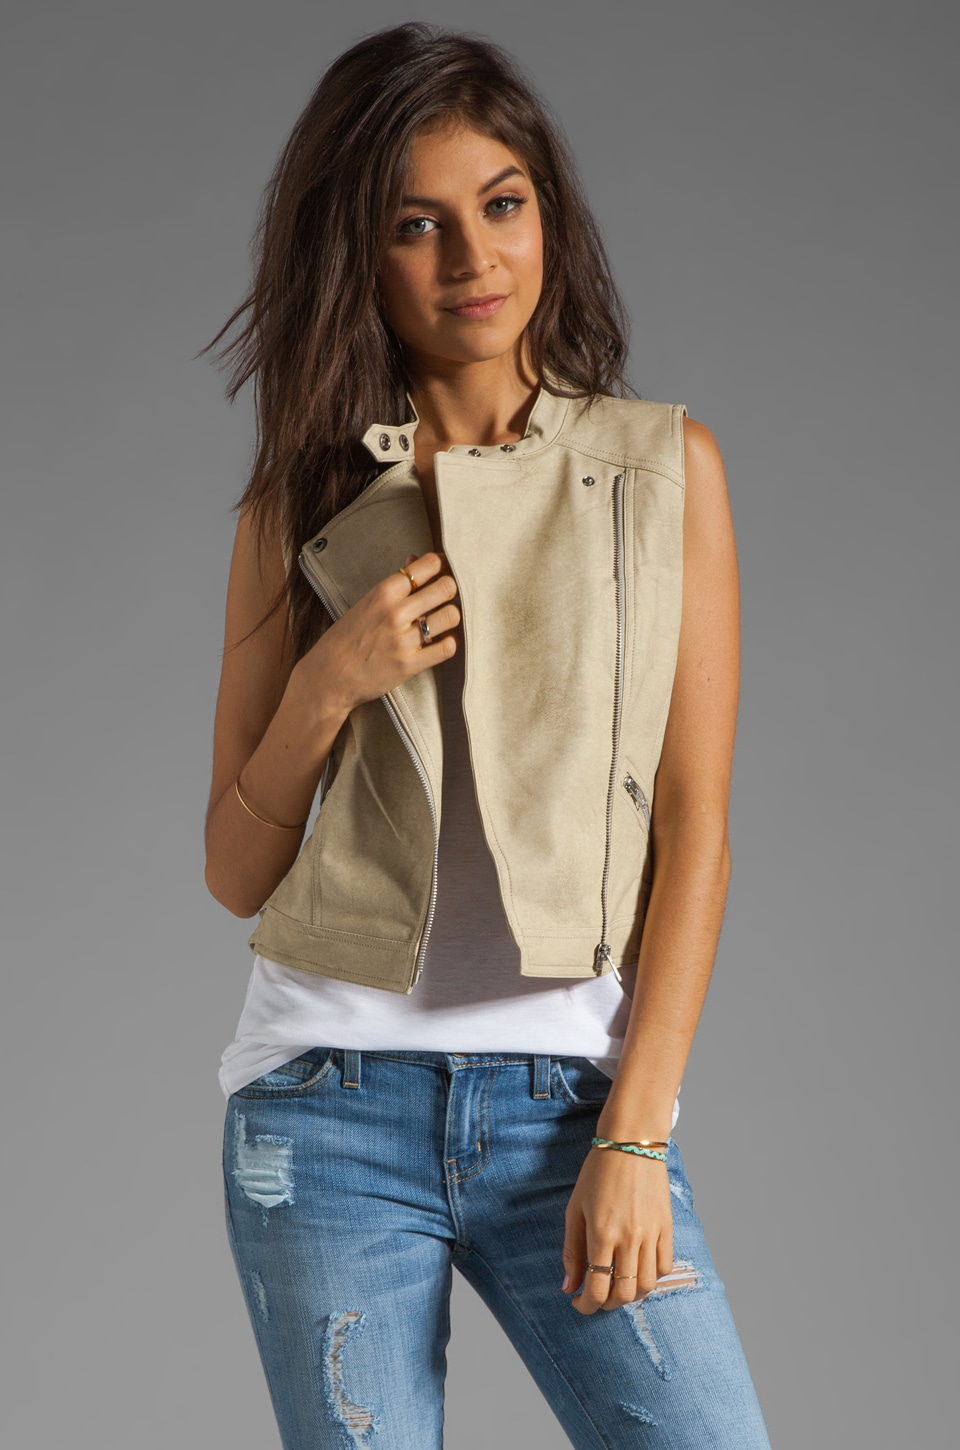 MM Couture by Miss Me Moto Vest in Off White